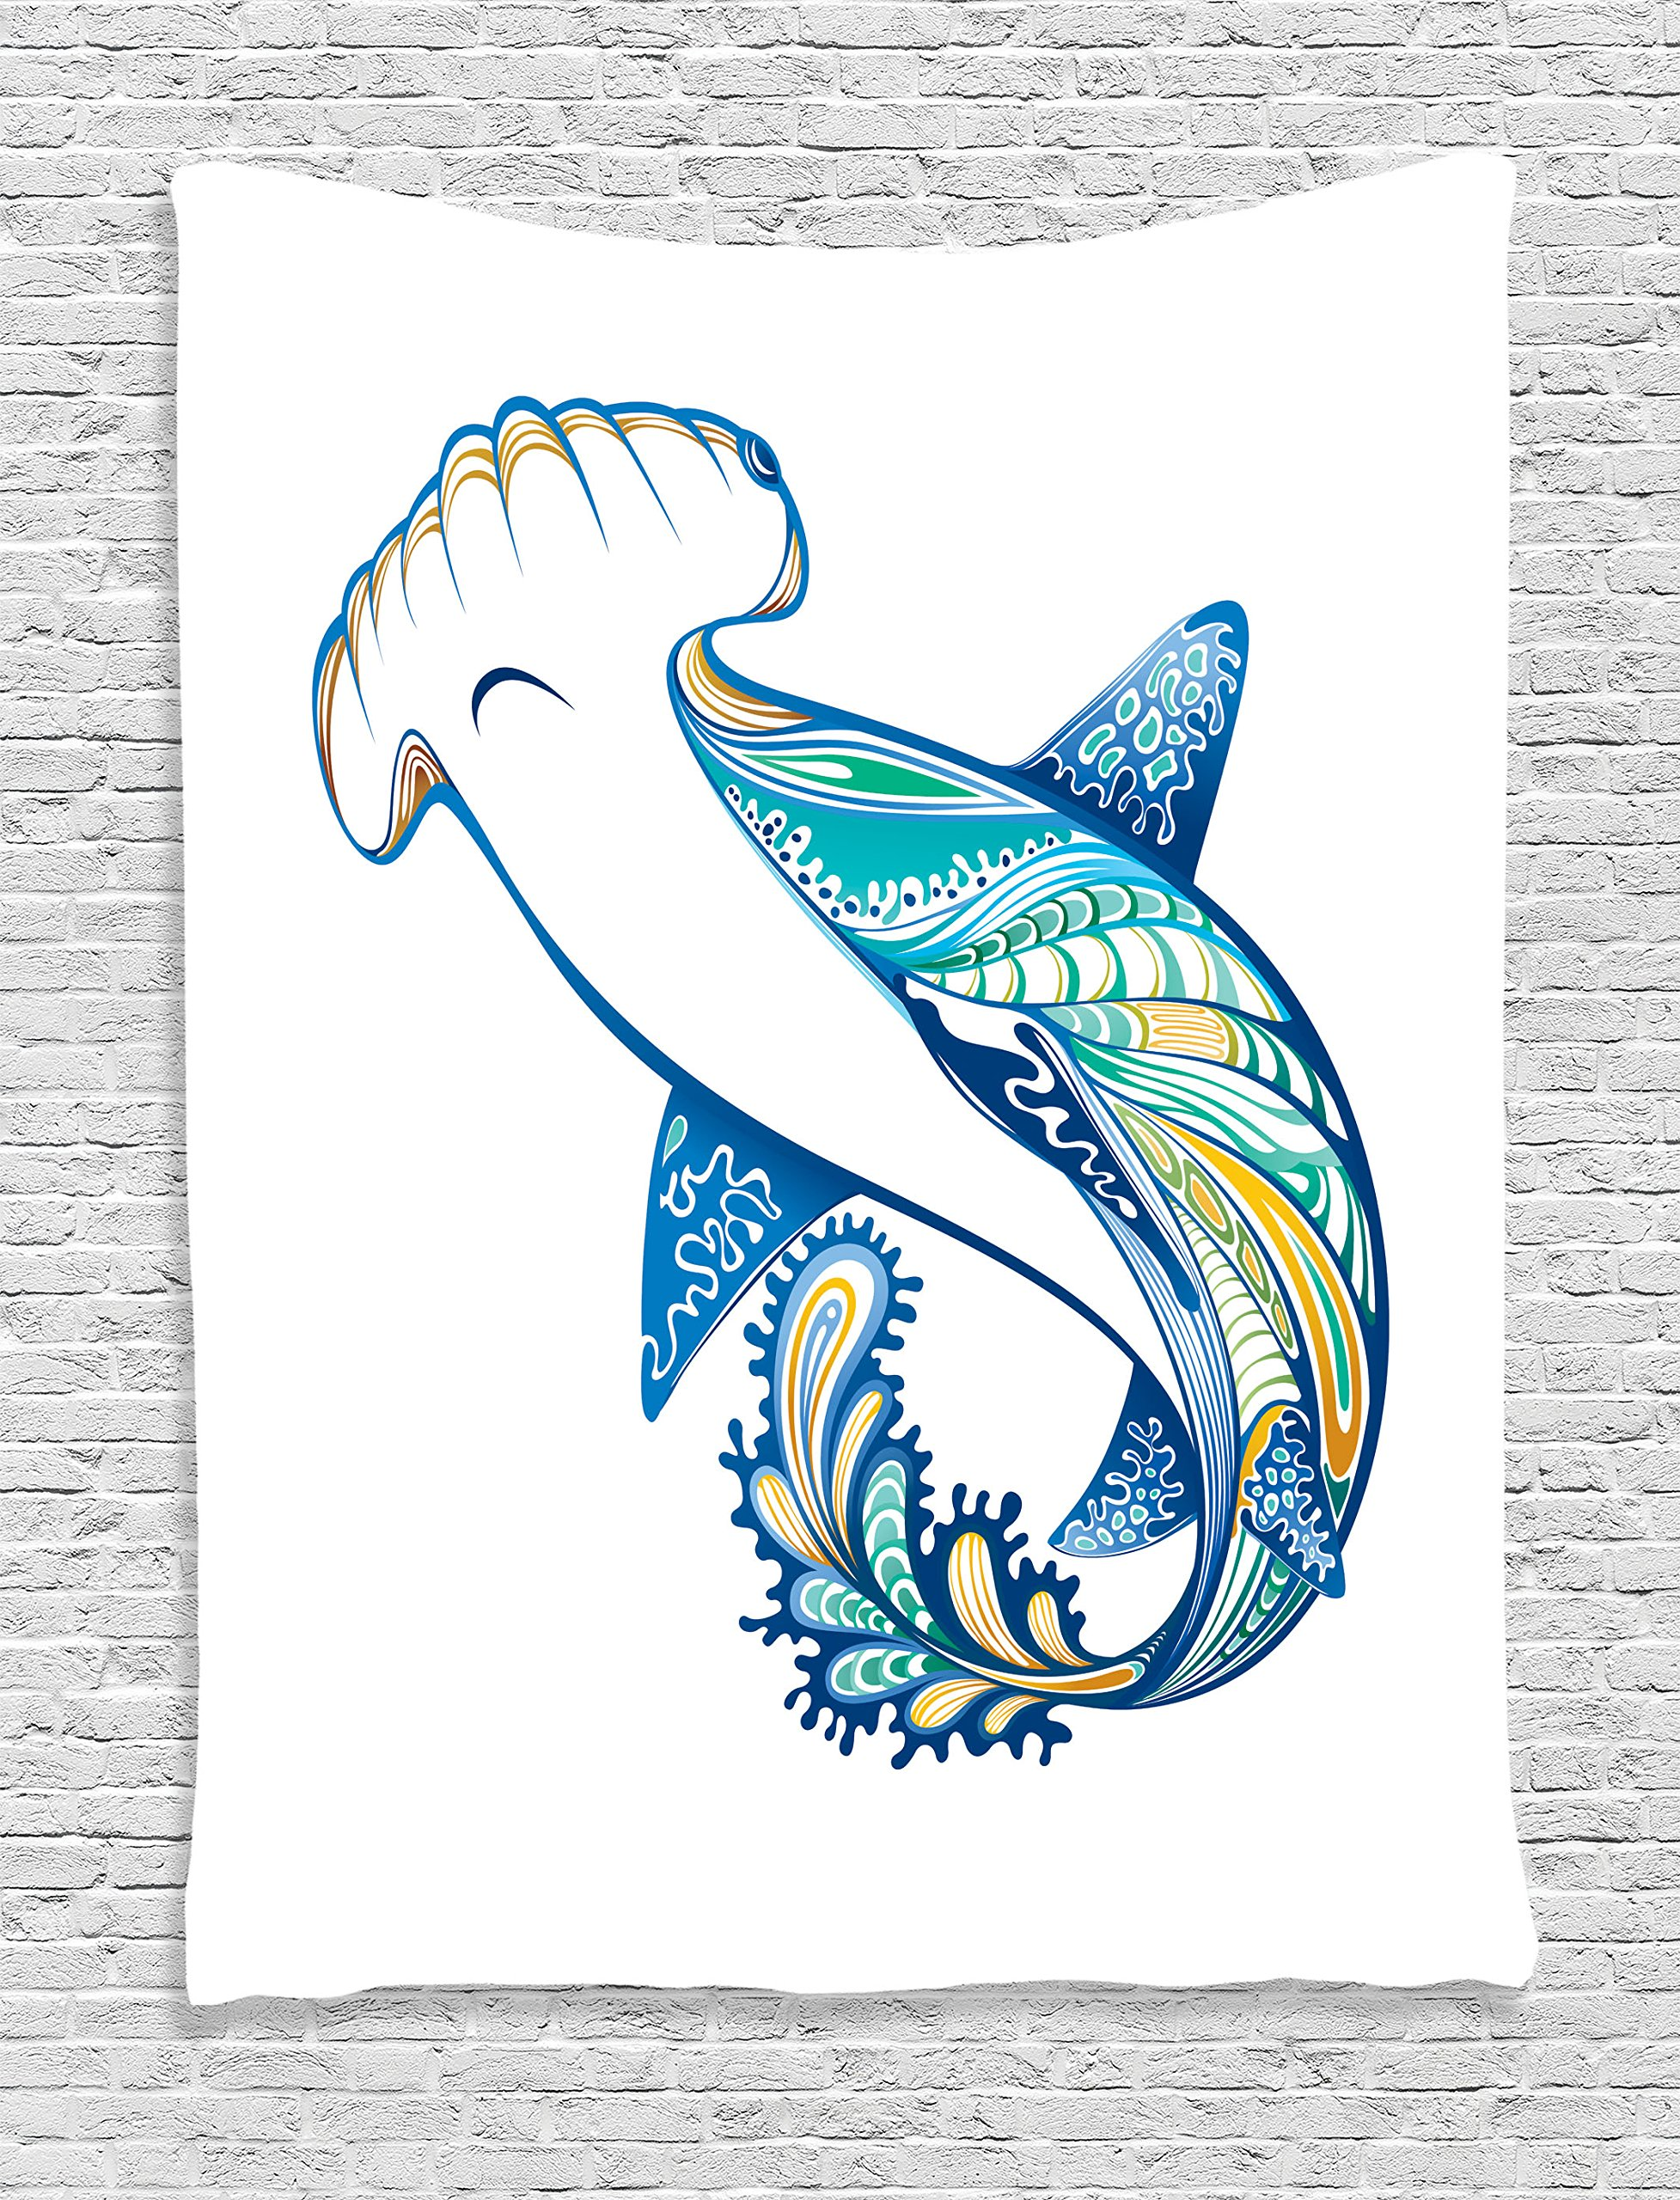 Ambesonne Abstract Home Decor Tapestry Wall Hanging, Hammer Head Shark Ornate Underwater Sea Ocean Life Animals Marine Theme Image, Bedroom Living Room Dorm Decor, 60 x 80 inches, Blue Aqua White